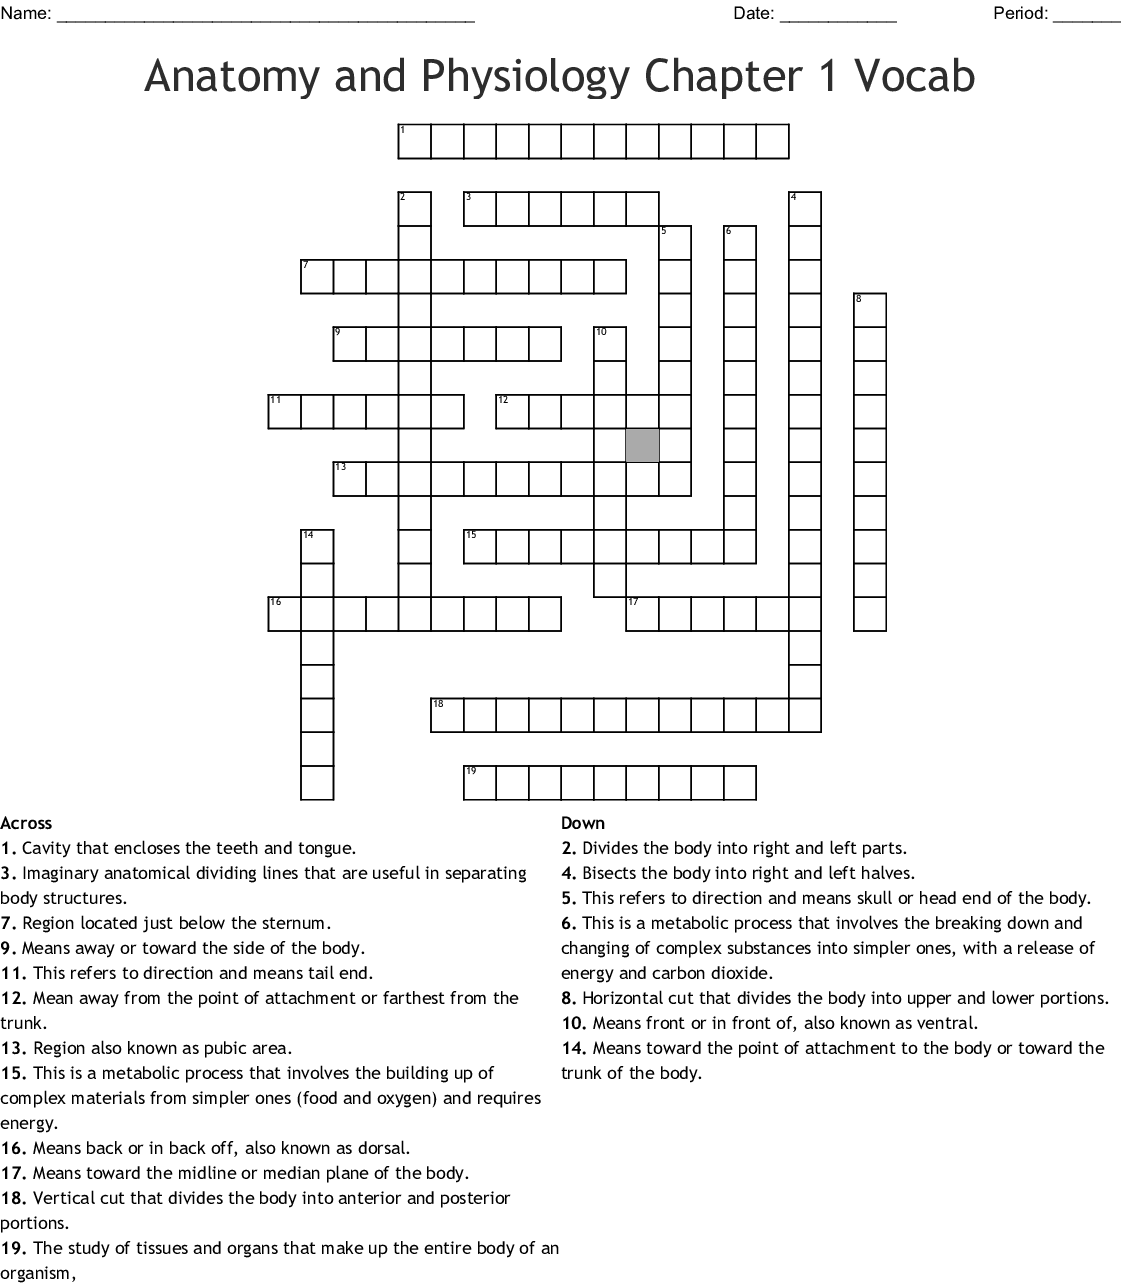 Anatomy And Physiology Chapter 1 Vocab Crossword